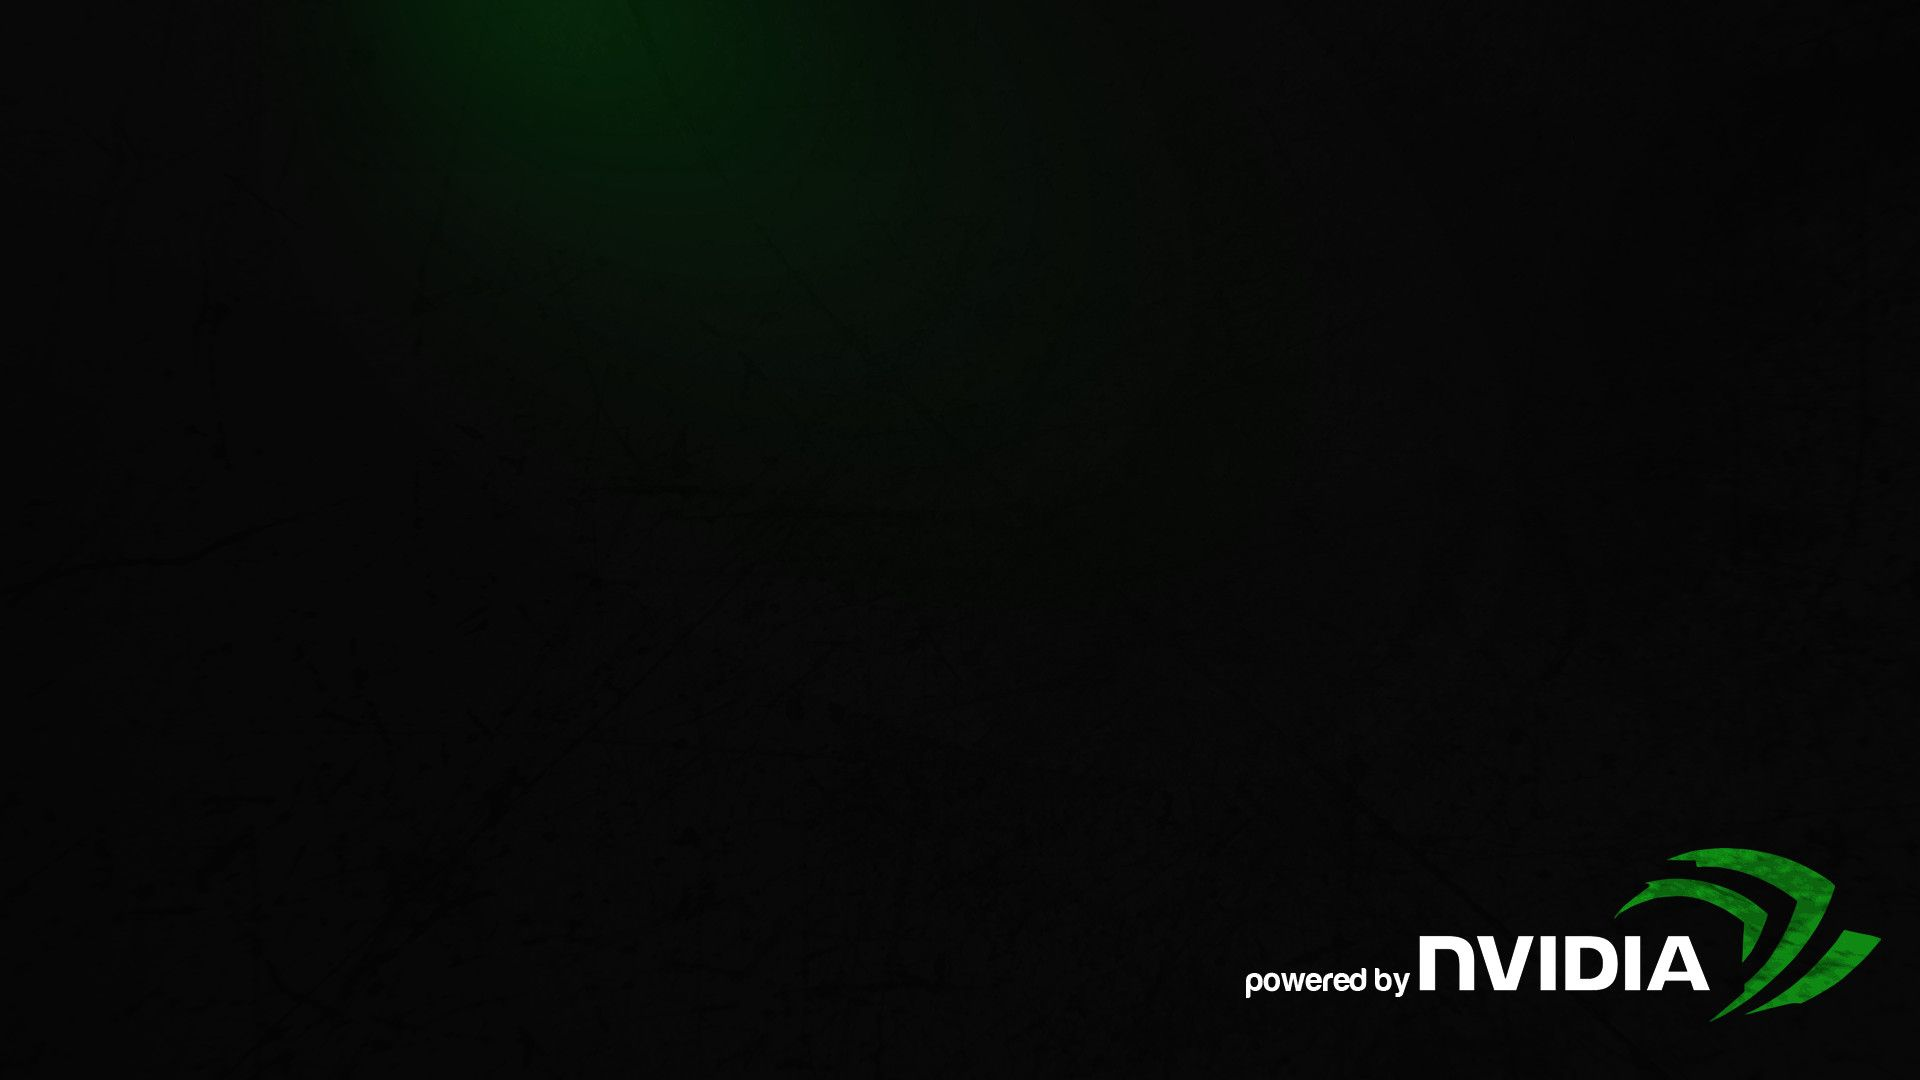 1920x1080 Nvidia Wallpapers Wallpaper Cave In 2019